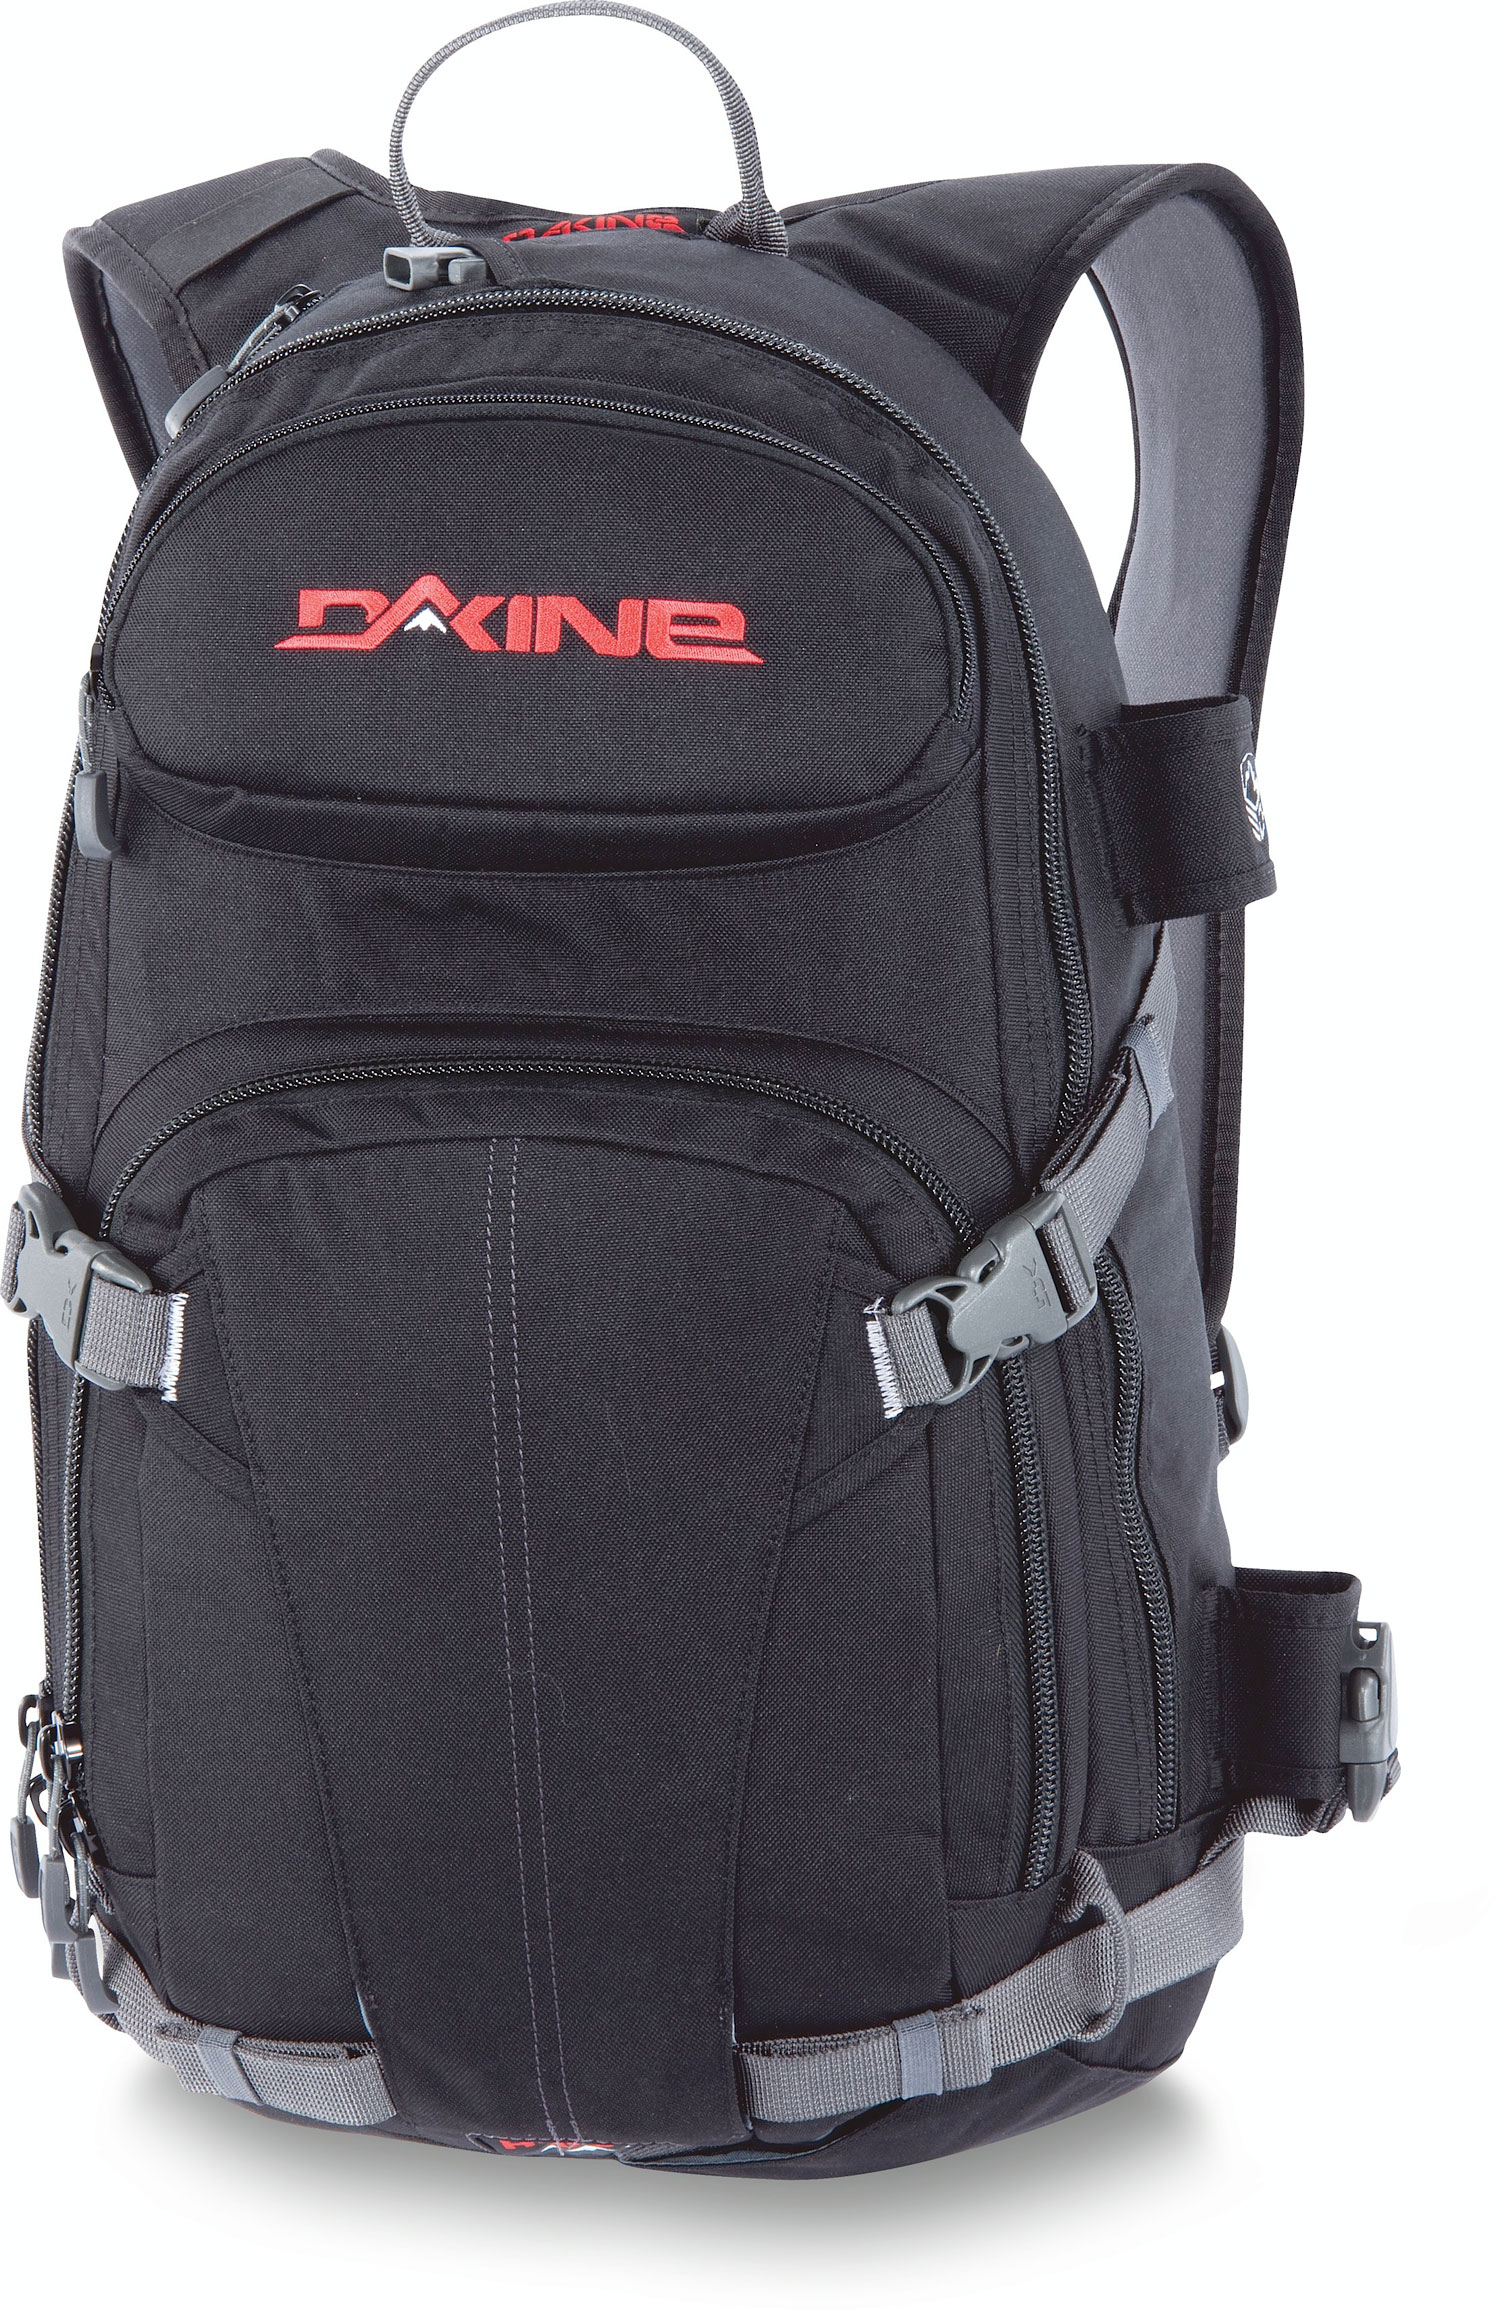 "Ski Key Features of the Dakine Heli Pro 20L Backpack: 1200 cu. in. [ 20L ] 21 x 11 x 5.5"" [ 53 x 28 x 14cm ] 2 lbs. [ .9kg ] 600D Polyester Vertical snowboard carry Diagonal ski carry Fleece lined goggle pocket Hydration compatible Non-padded sleeve fits most 15"" laptops Organizer pocket Padded waist belt - $85.00"